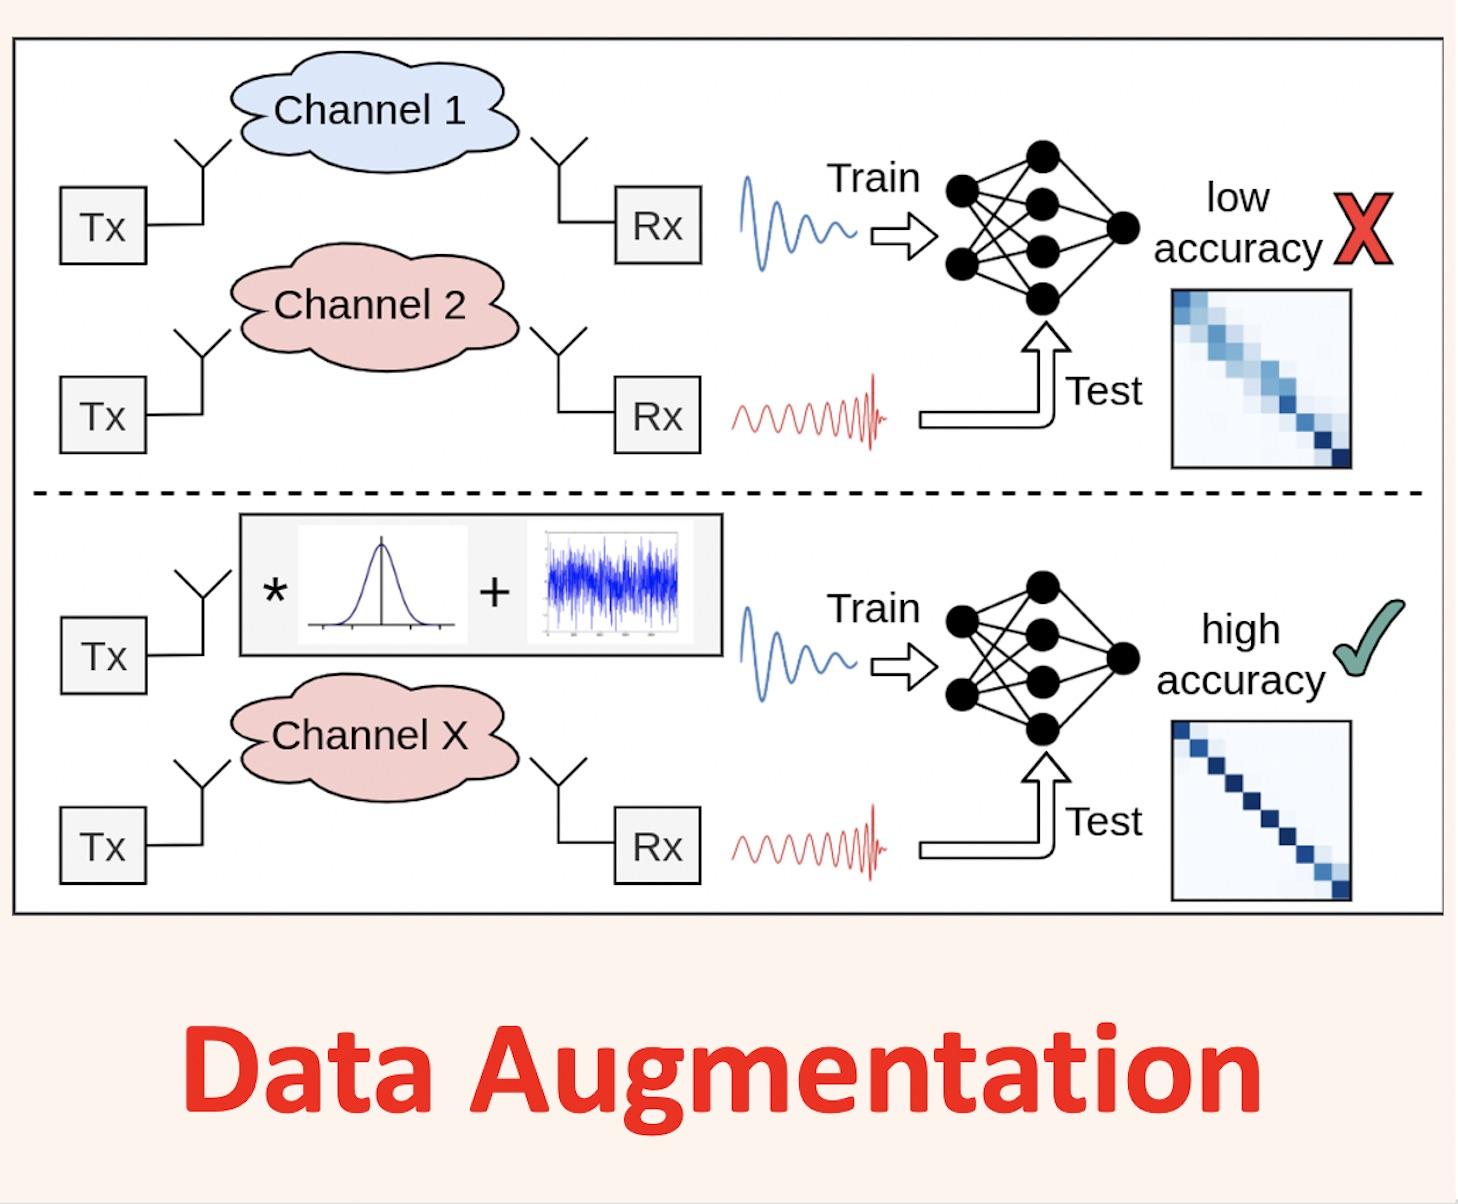 DataAugmentation